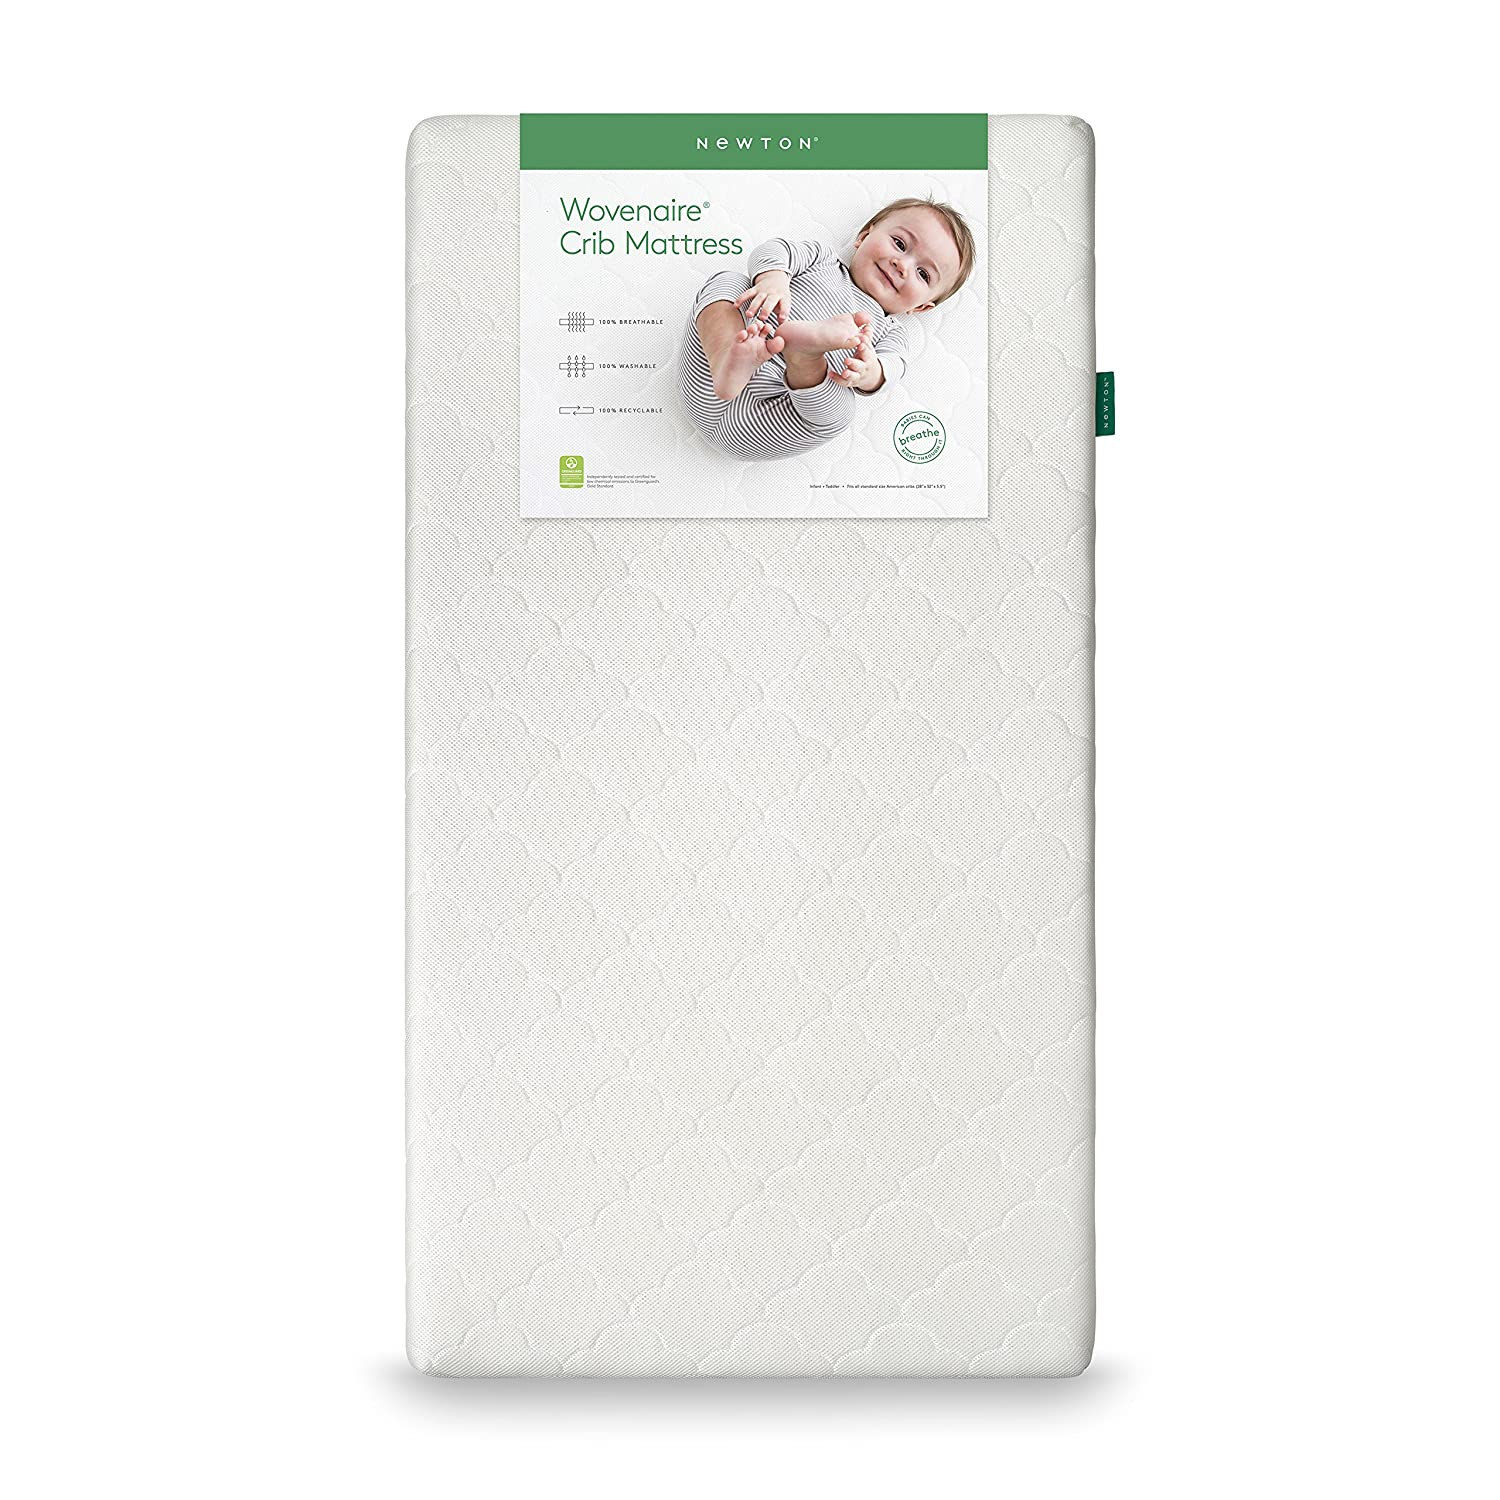 5 Best Baby Crib Mattress – Reviews And Buying Guide 1